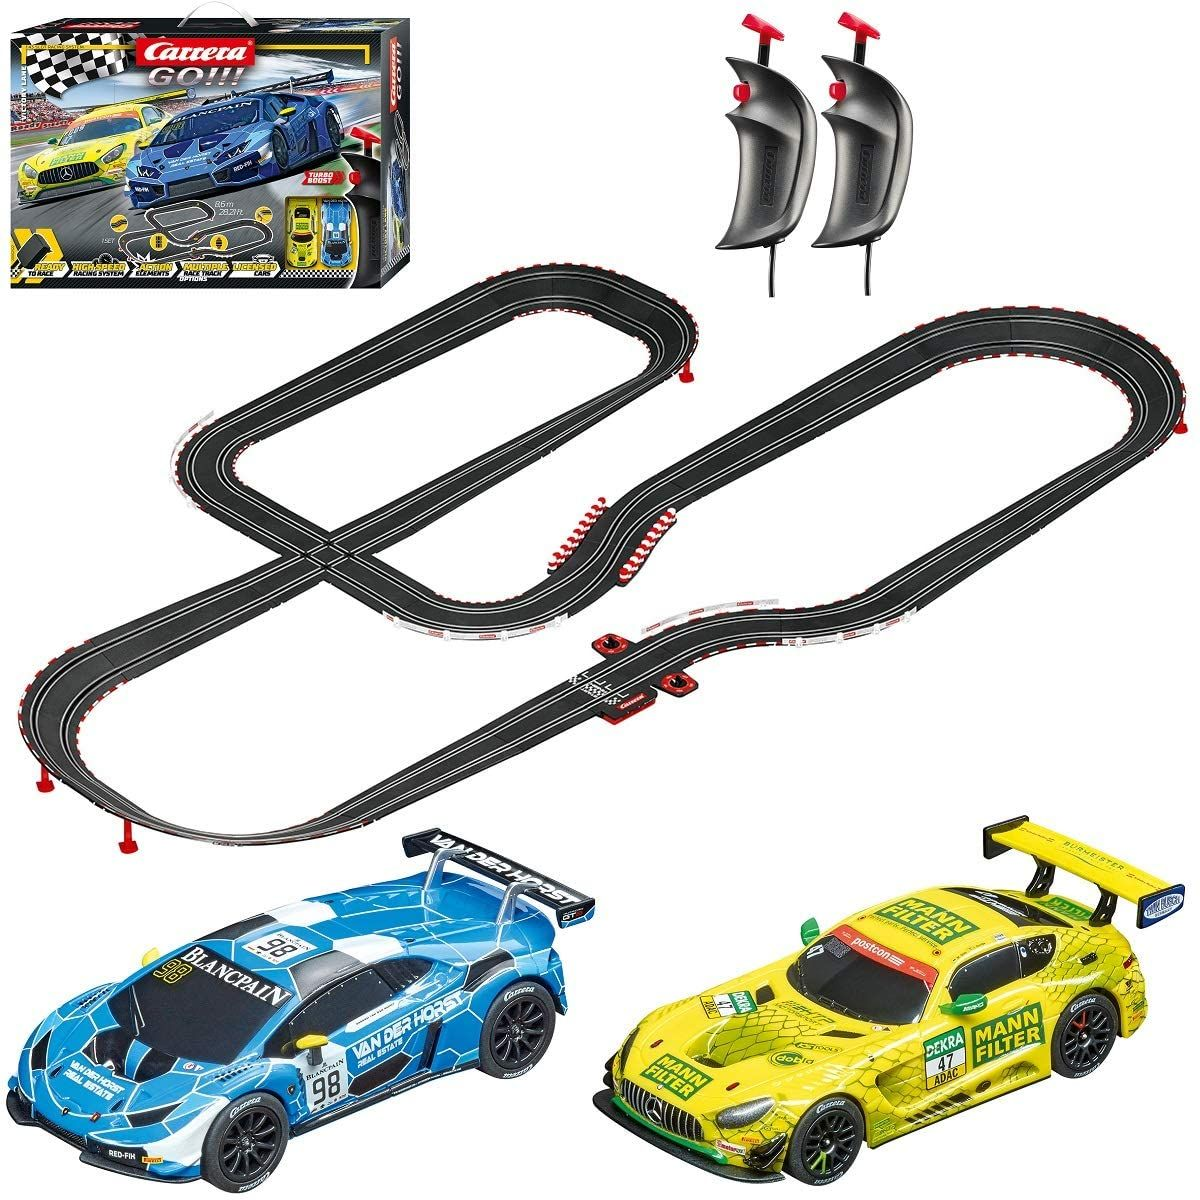 Carrera Go 62522 Victory Lane Electric Powered Slot Car In 2020 Slot Car Racing Toy Race Track Slot Cars